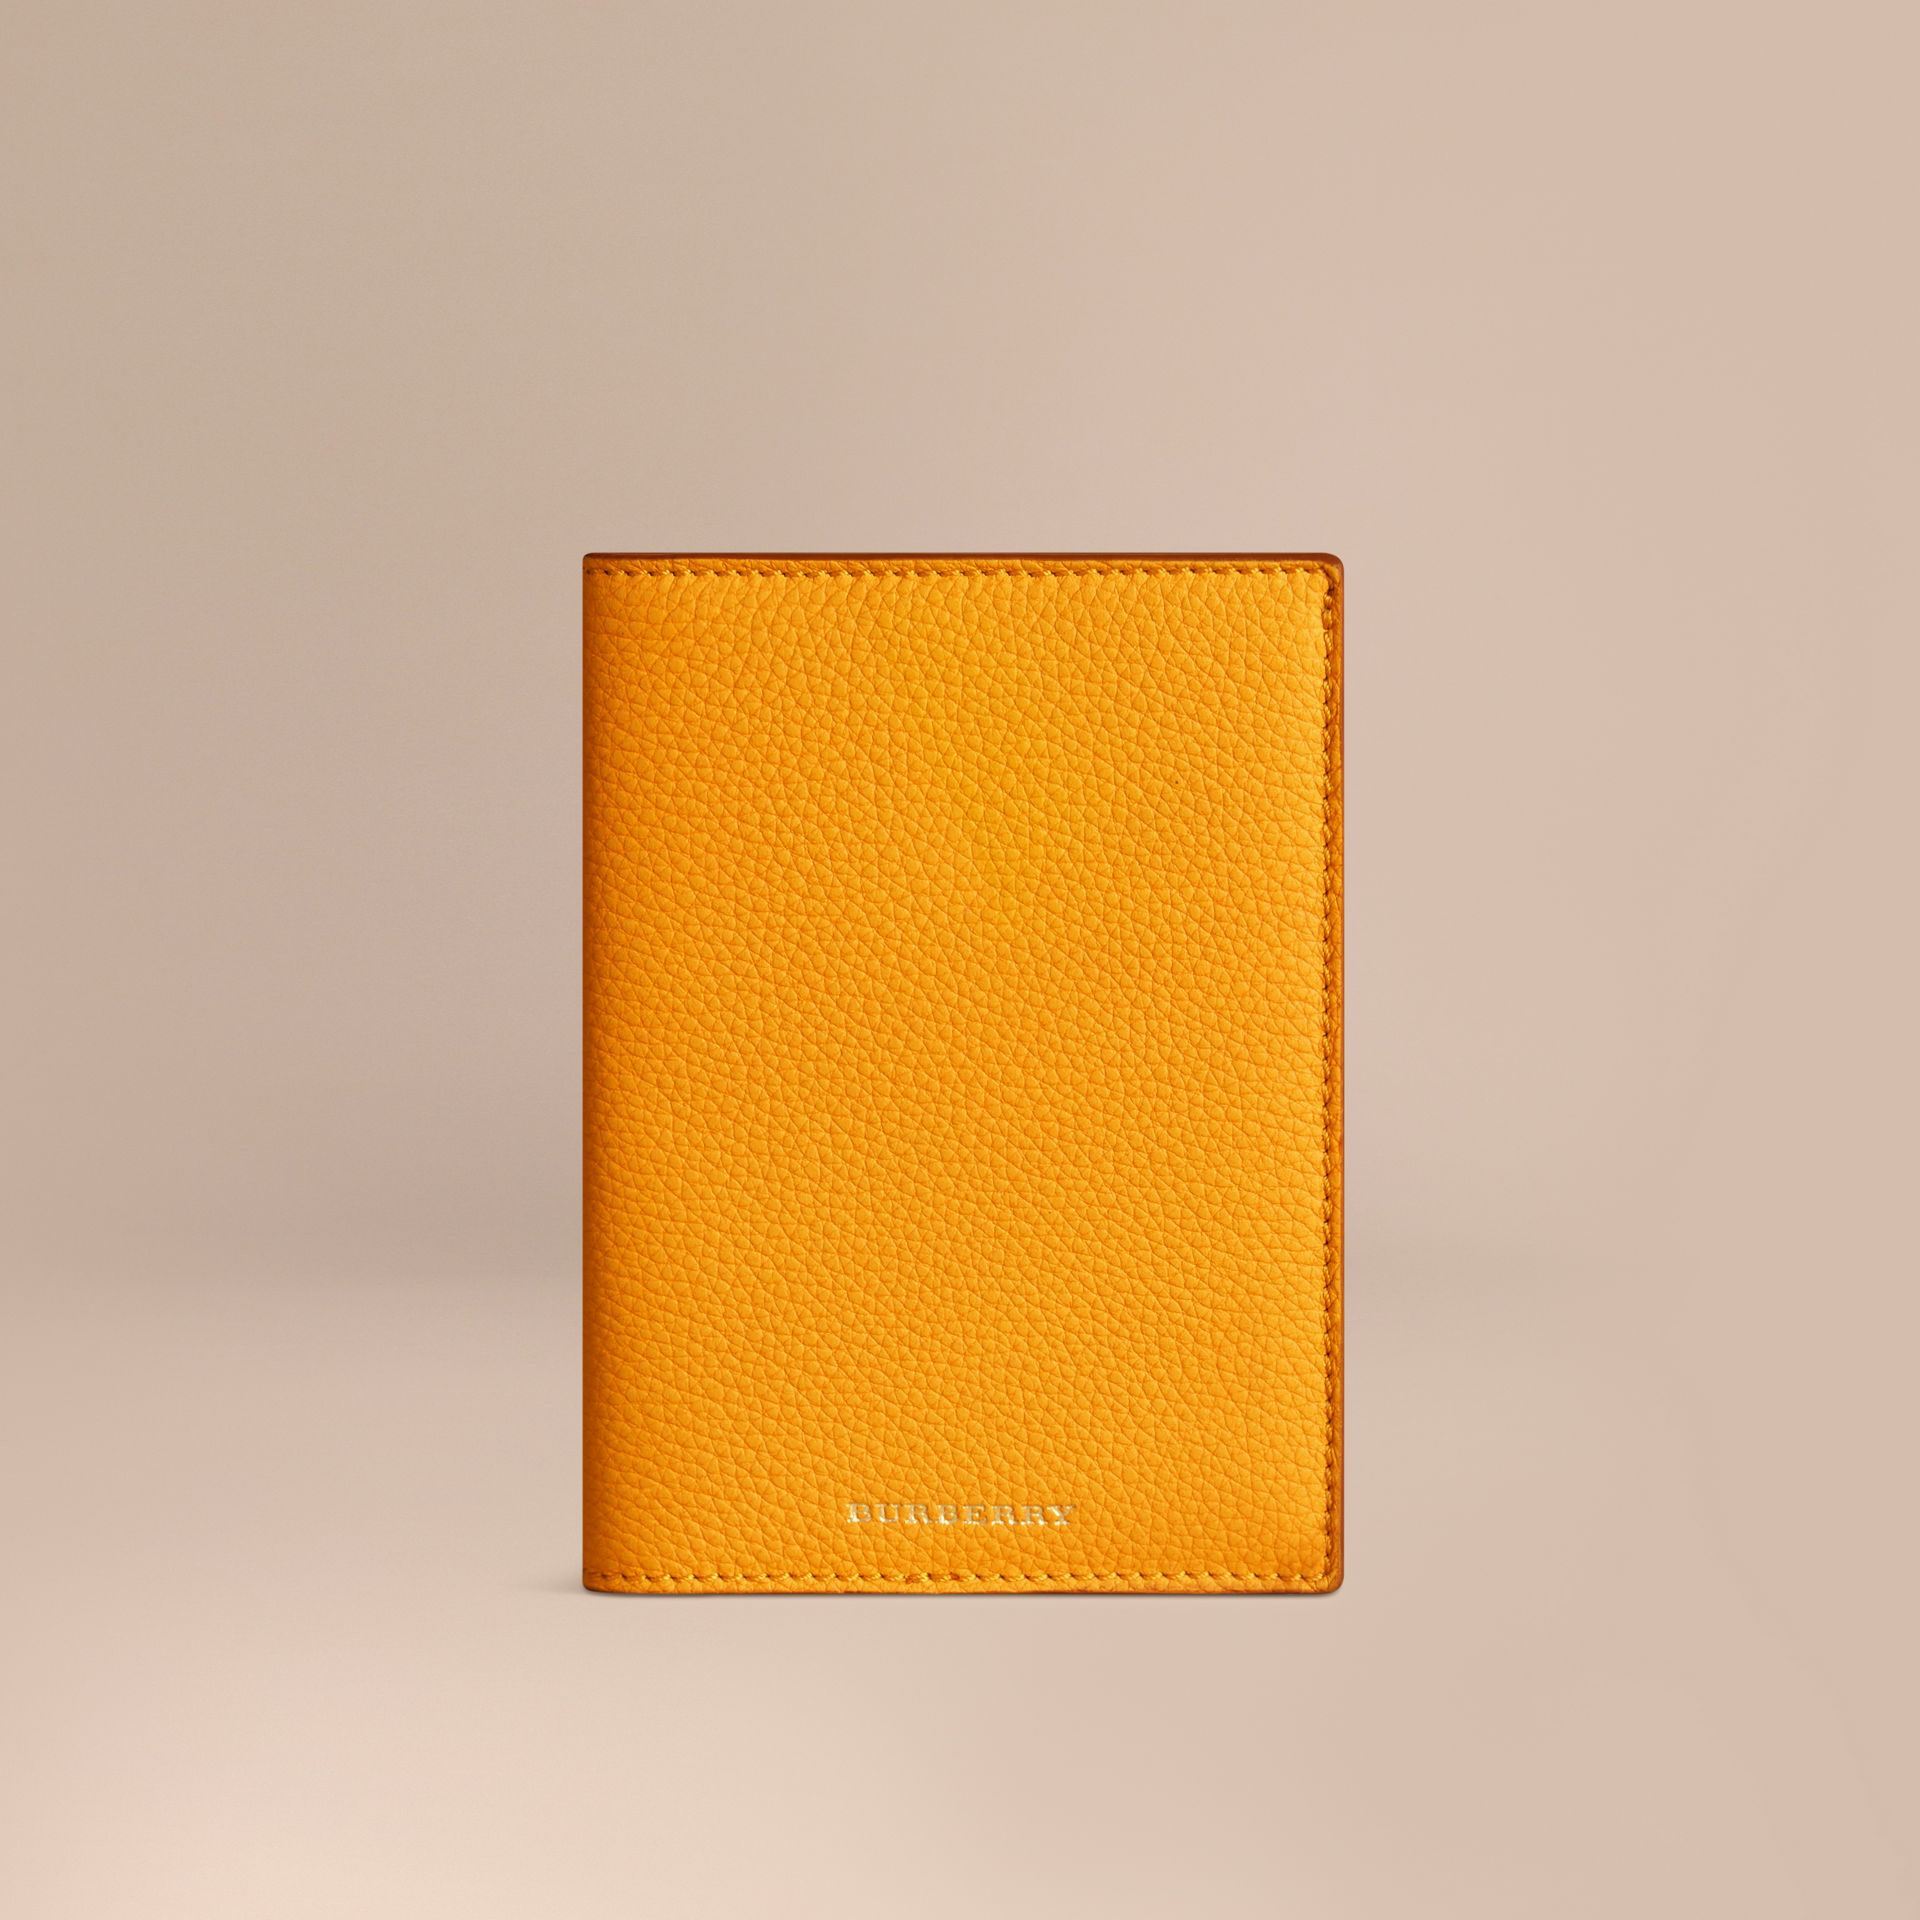 Grainy Leather Passport Cover in Ochre Yellow - gallery image 1